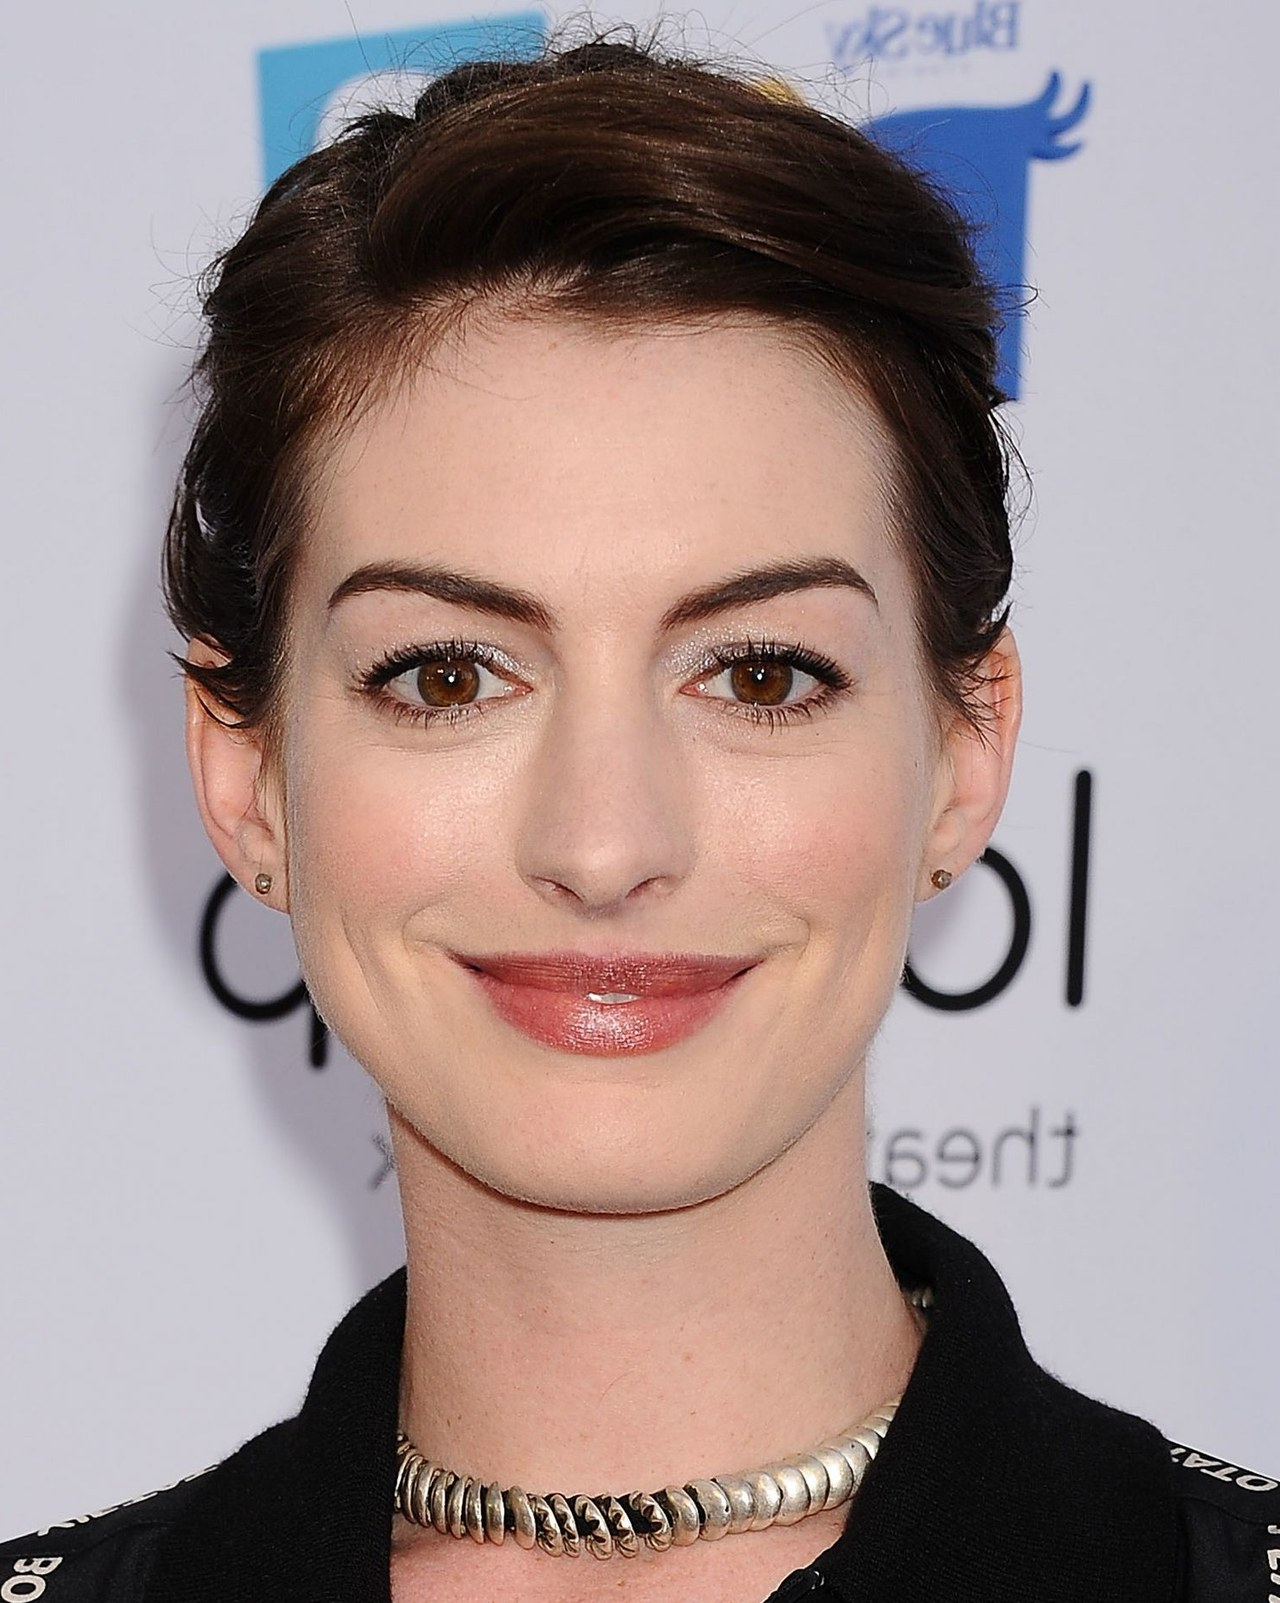 Celebrity Hairstyle Idea: Anne Hathaway's Updo For Short Hair That's Intended For Anne Hathaway Short Haircuts (View 20 of 25)